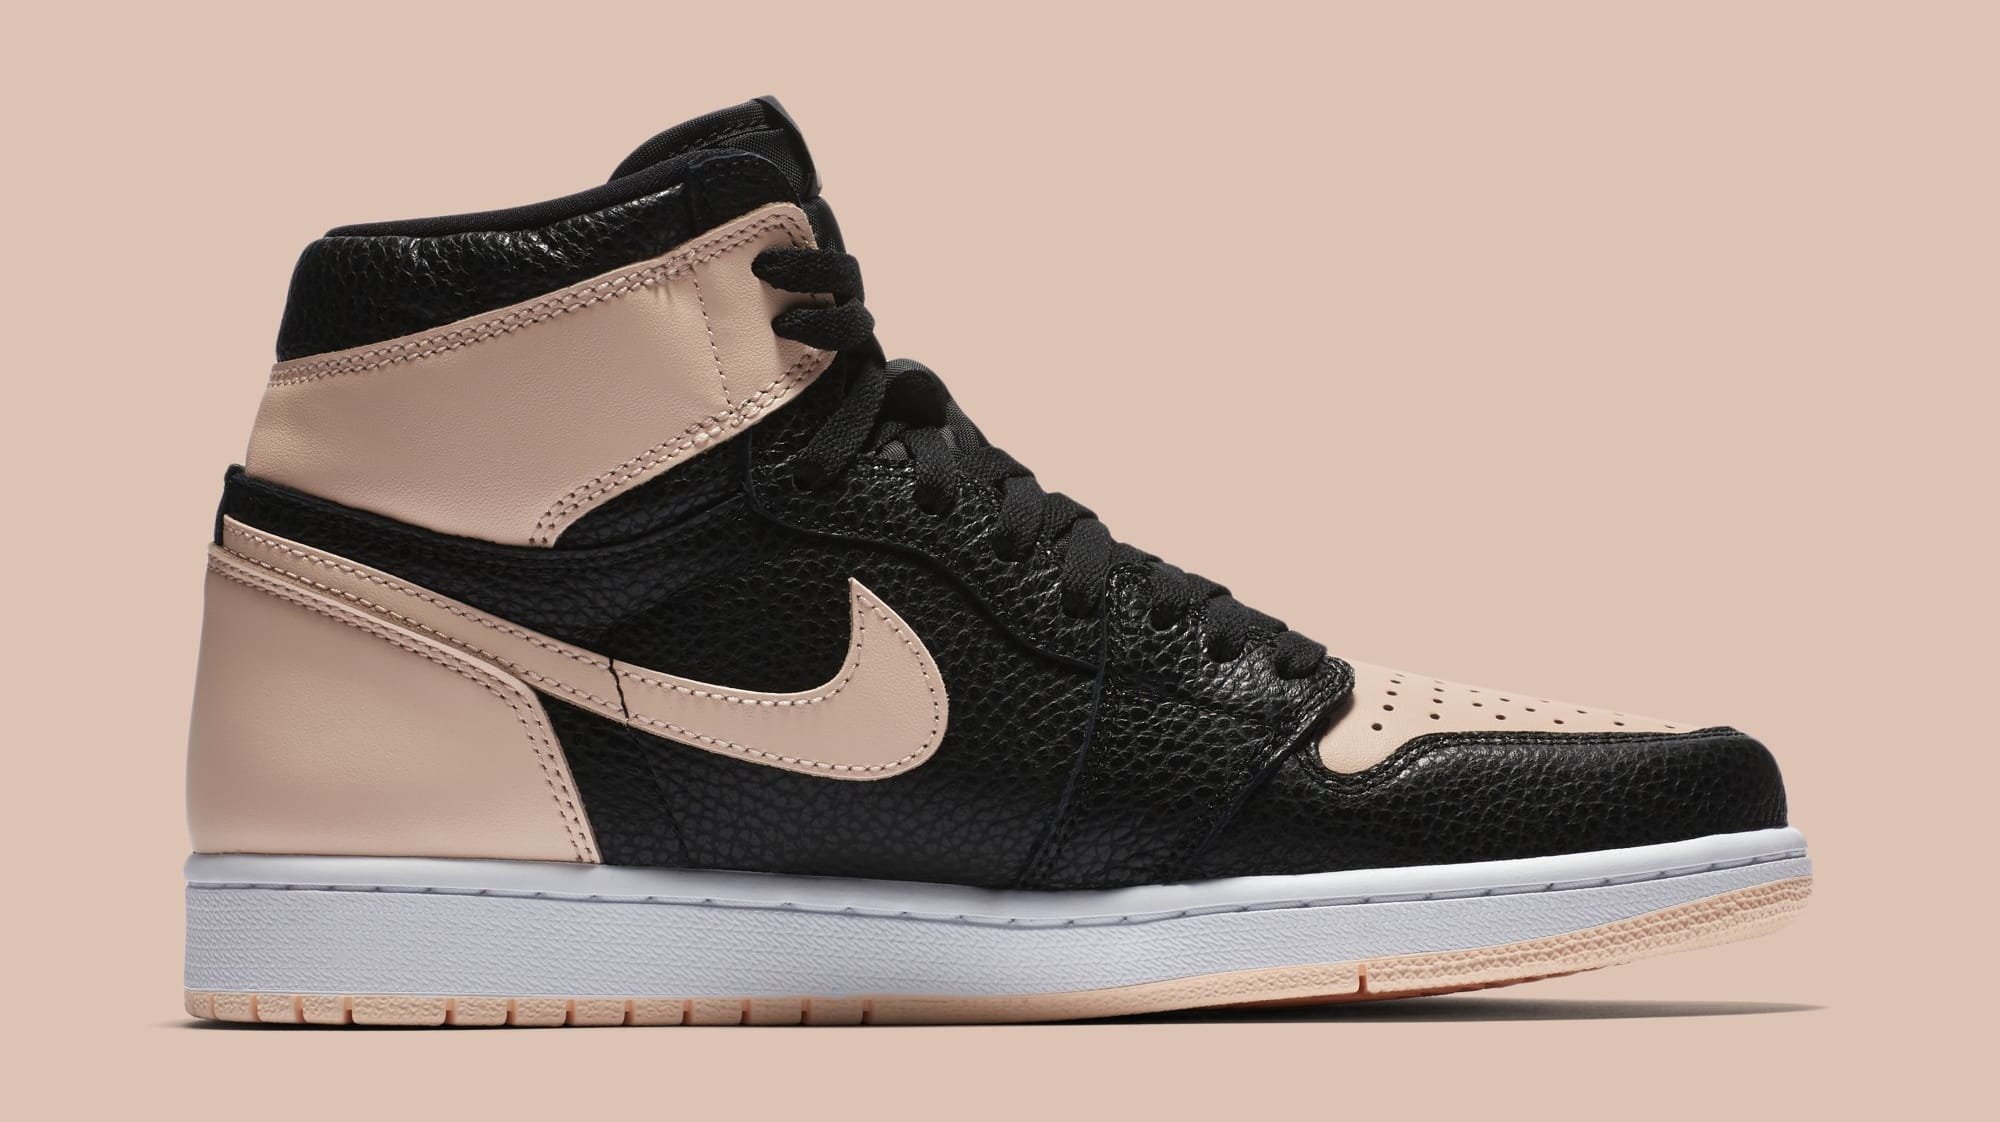 Air Jordan 1 'Crimson Tint' 555088-081 (Medial)